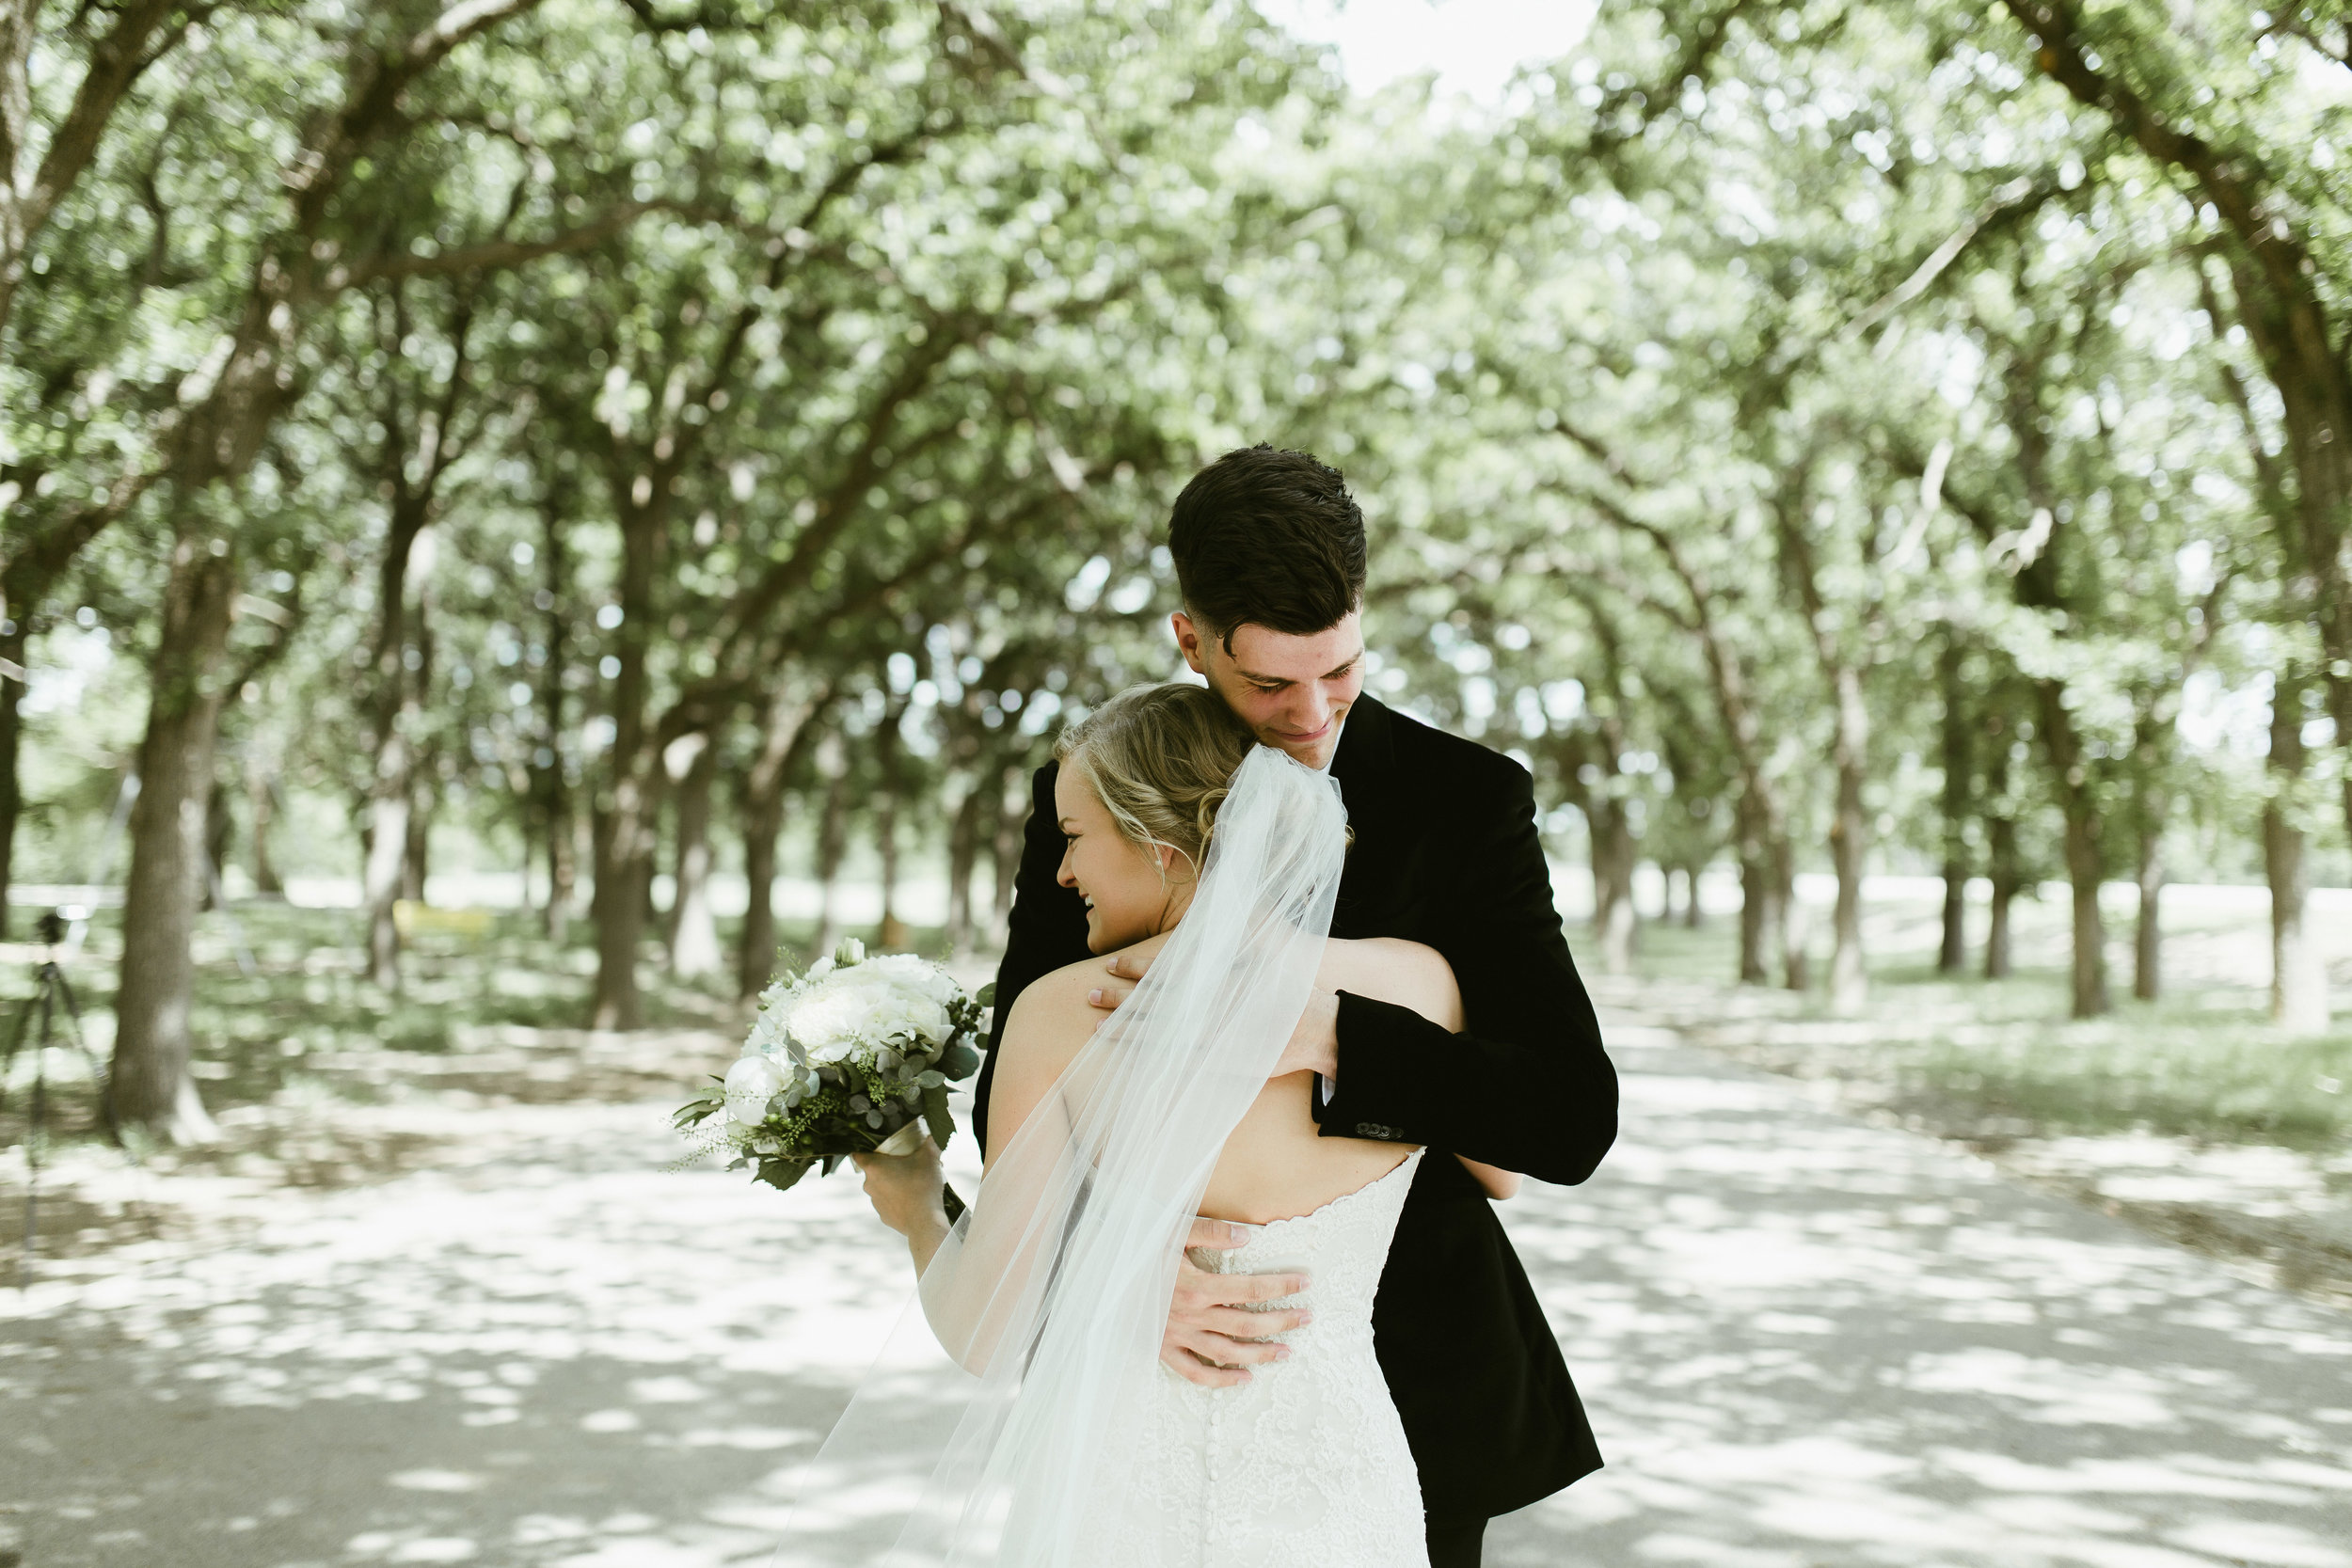 Megan&JaredMarried-174.jpg